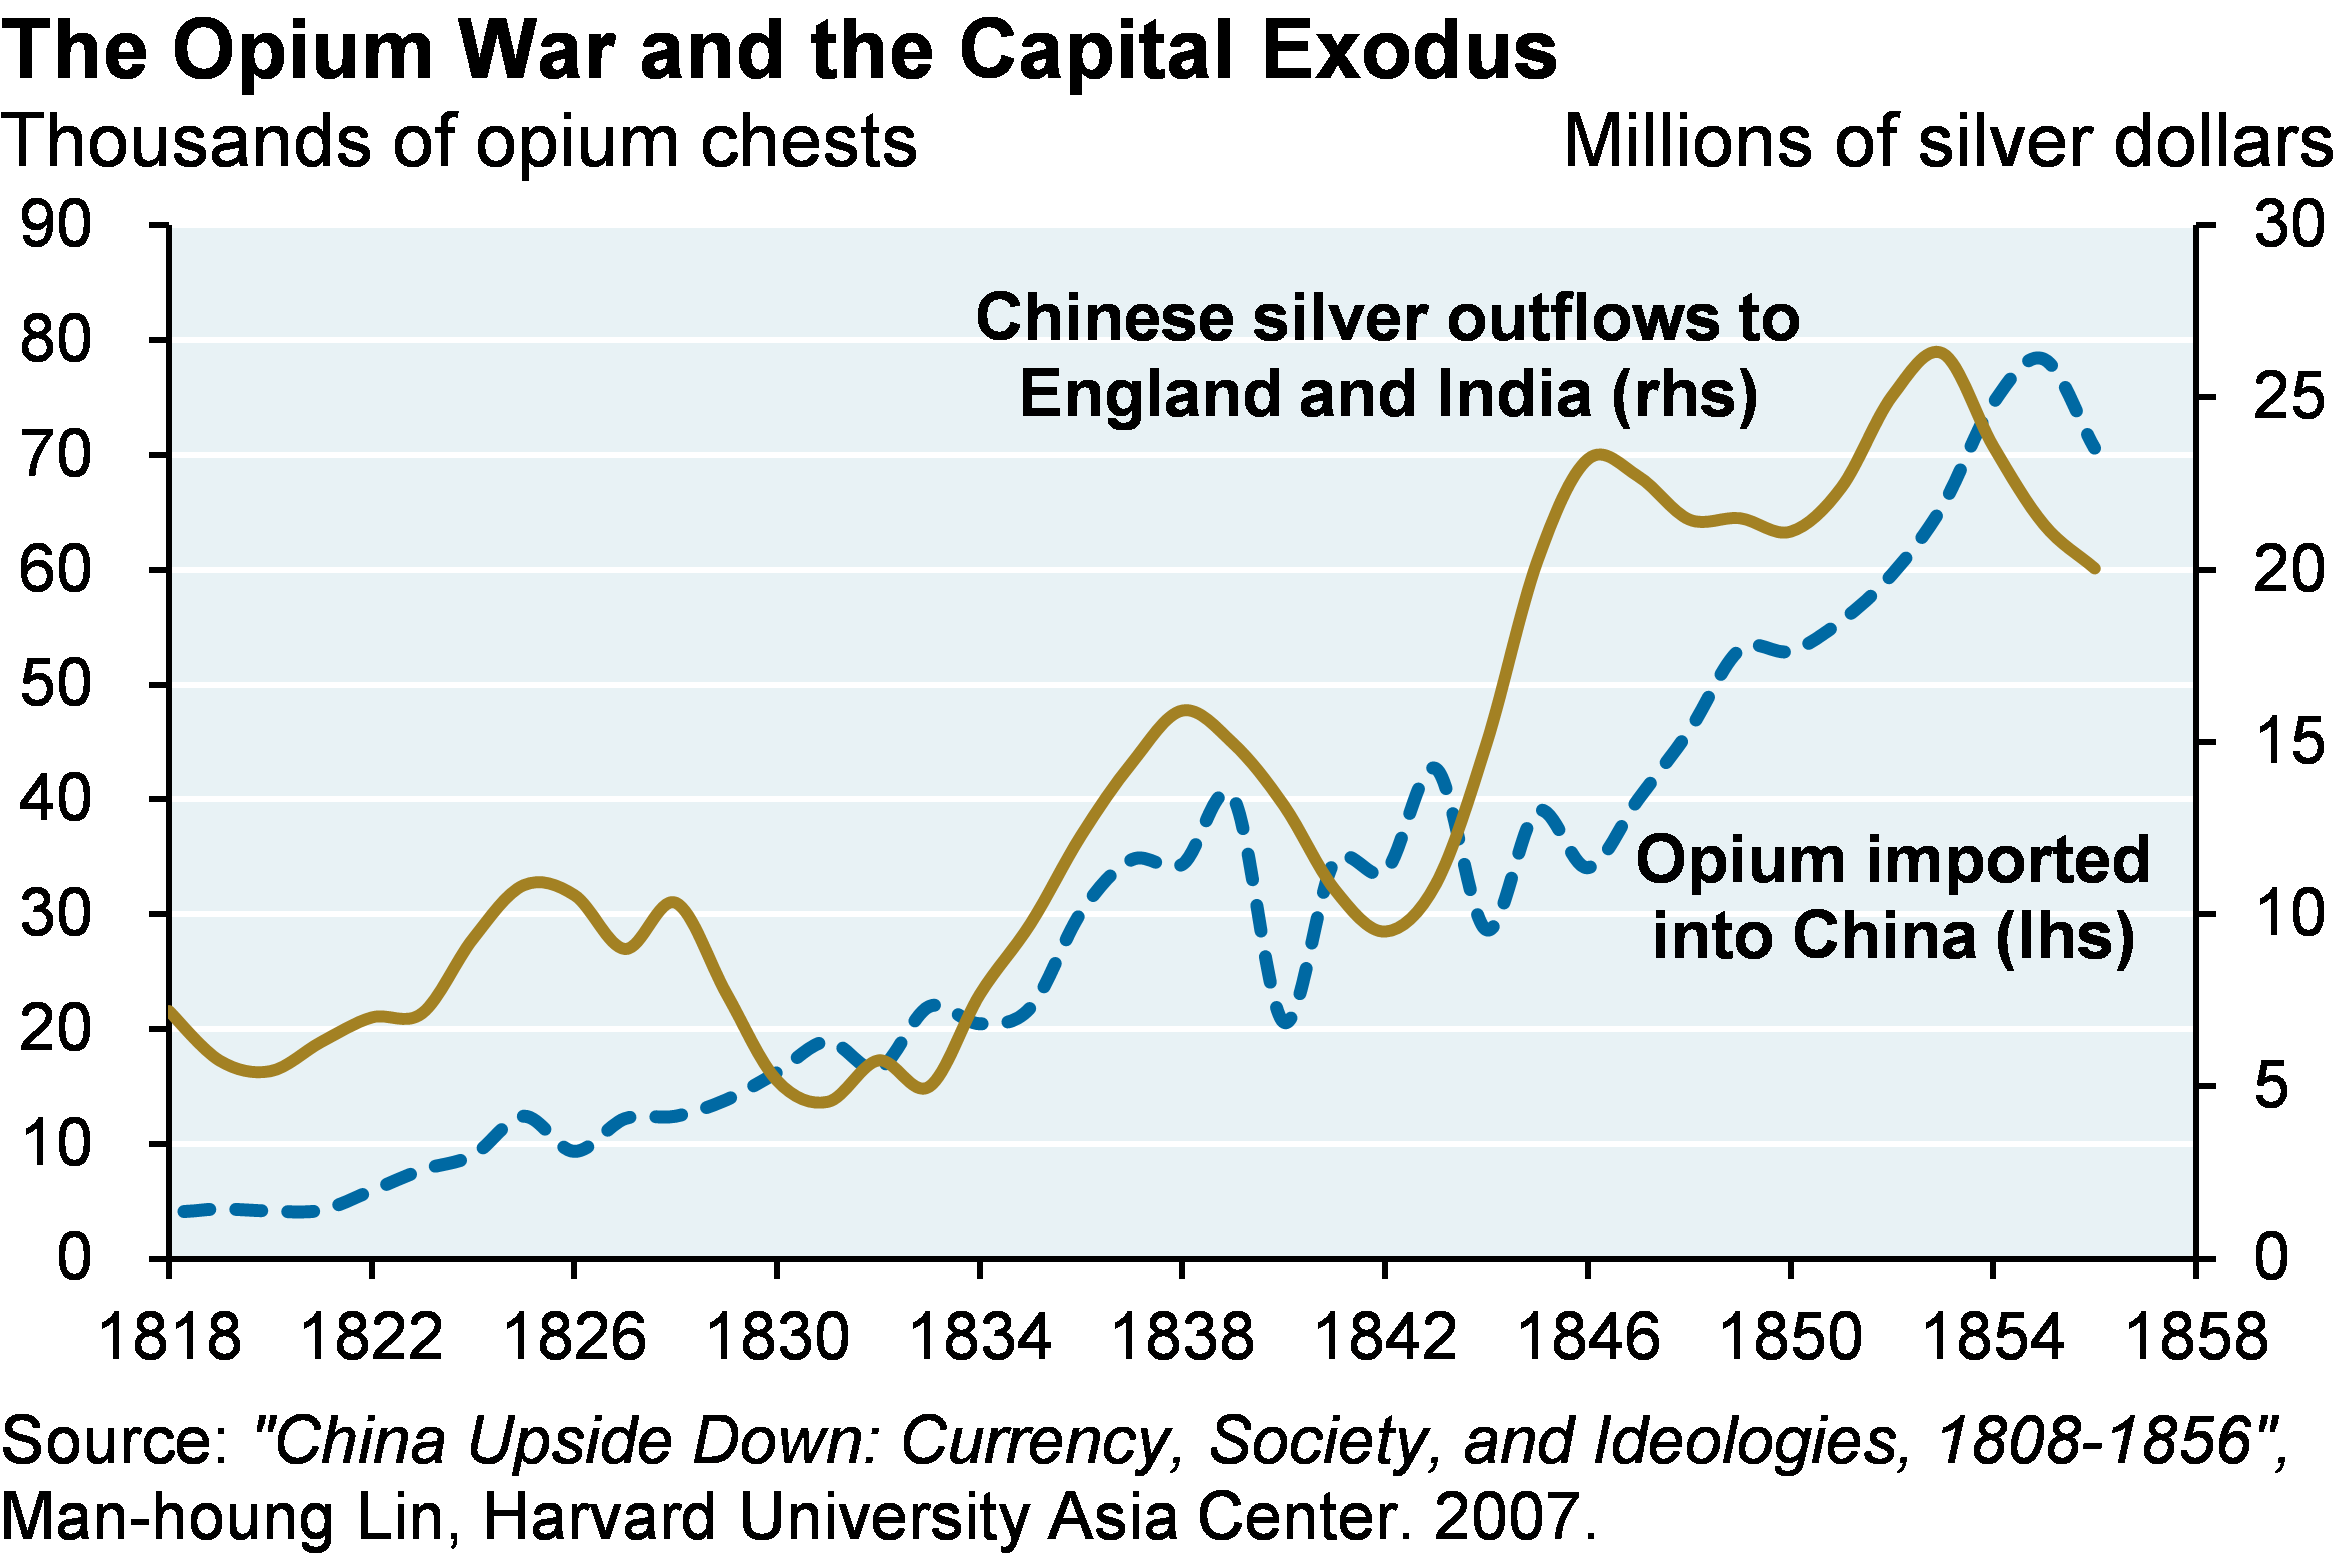 Line chart which shows opium chests imported into China and silver outflows to England and India from 1818 to 1858.